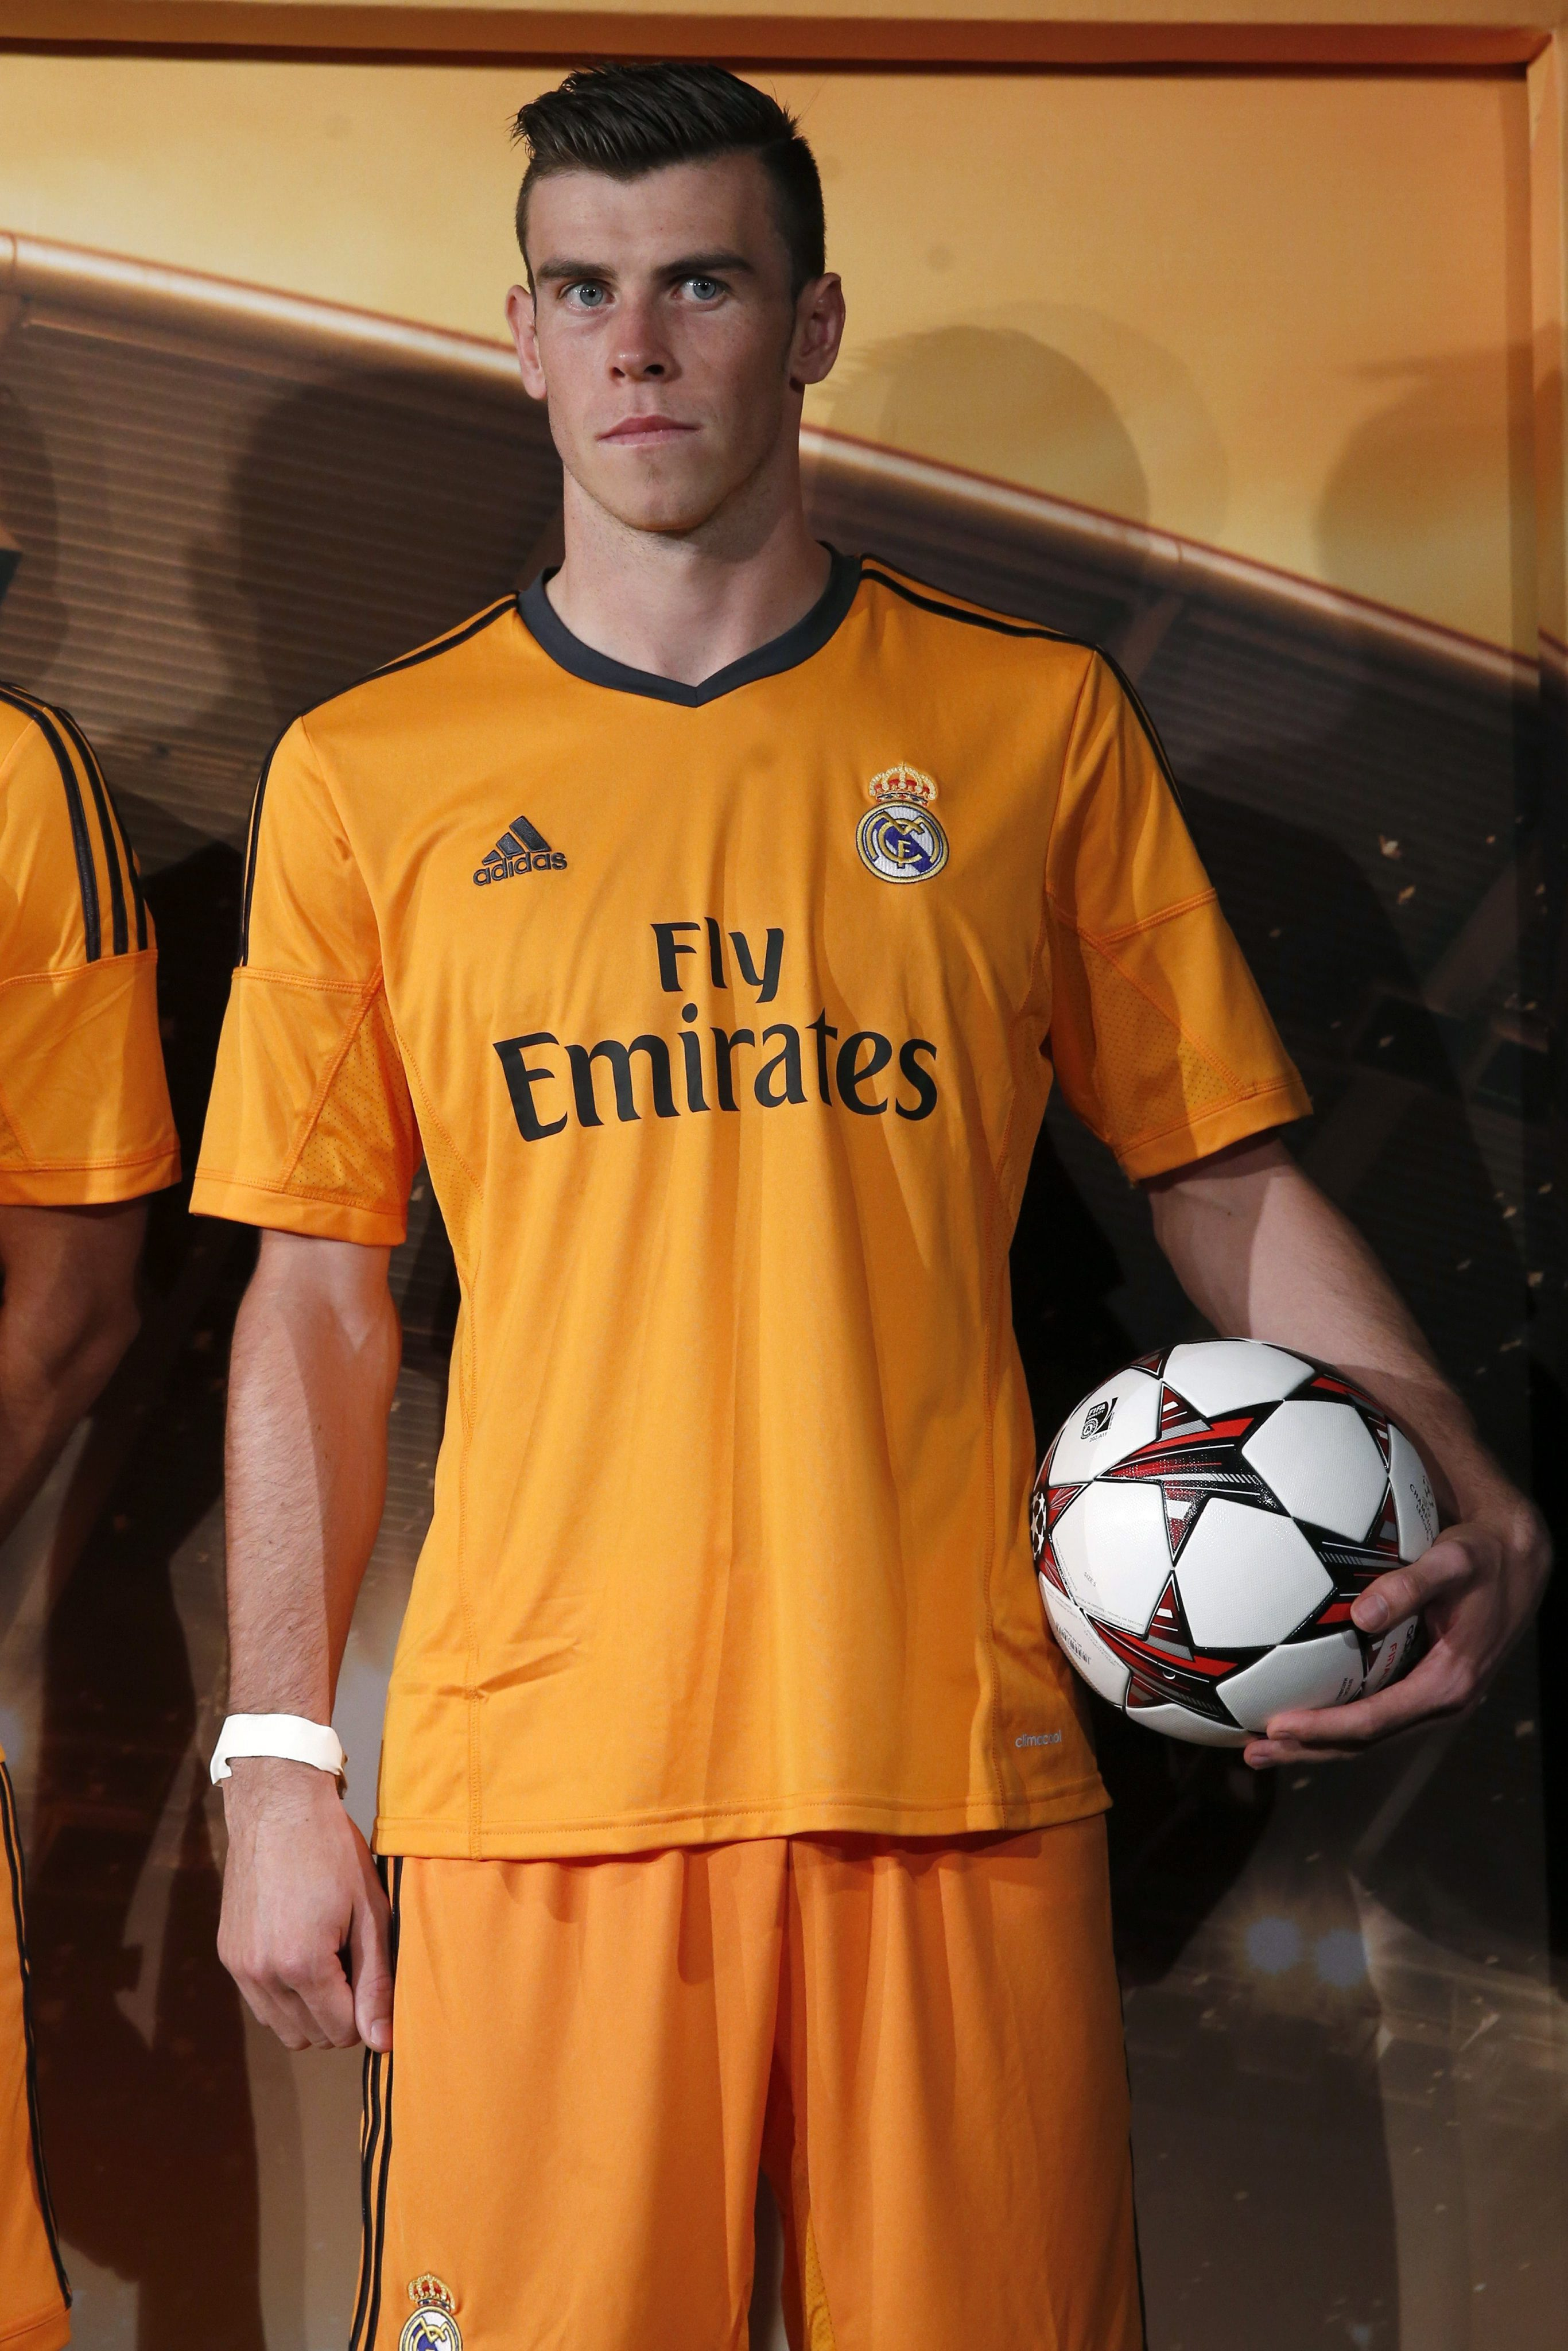 REAL MADRID¥S NEW CLOTHING FOR CHAMPIONS LEAGUE